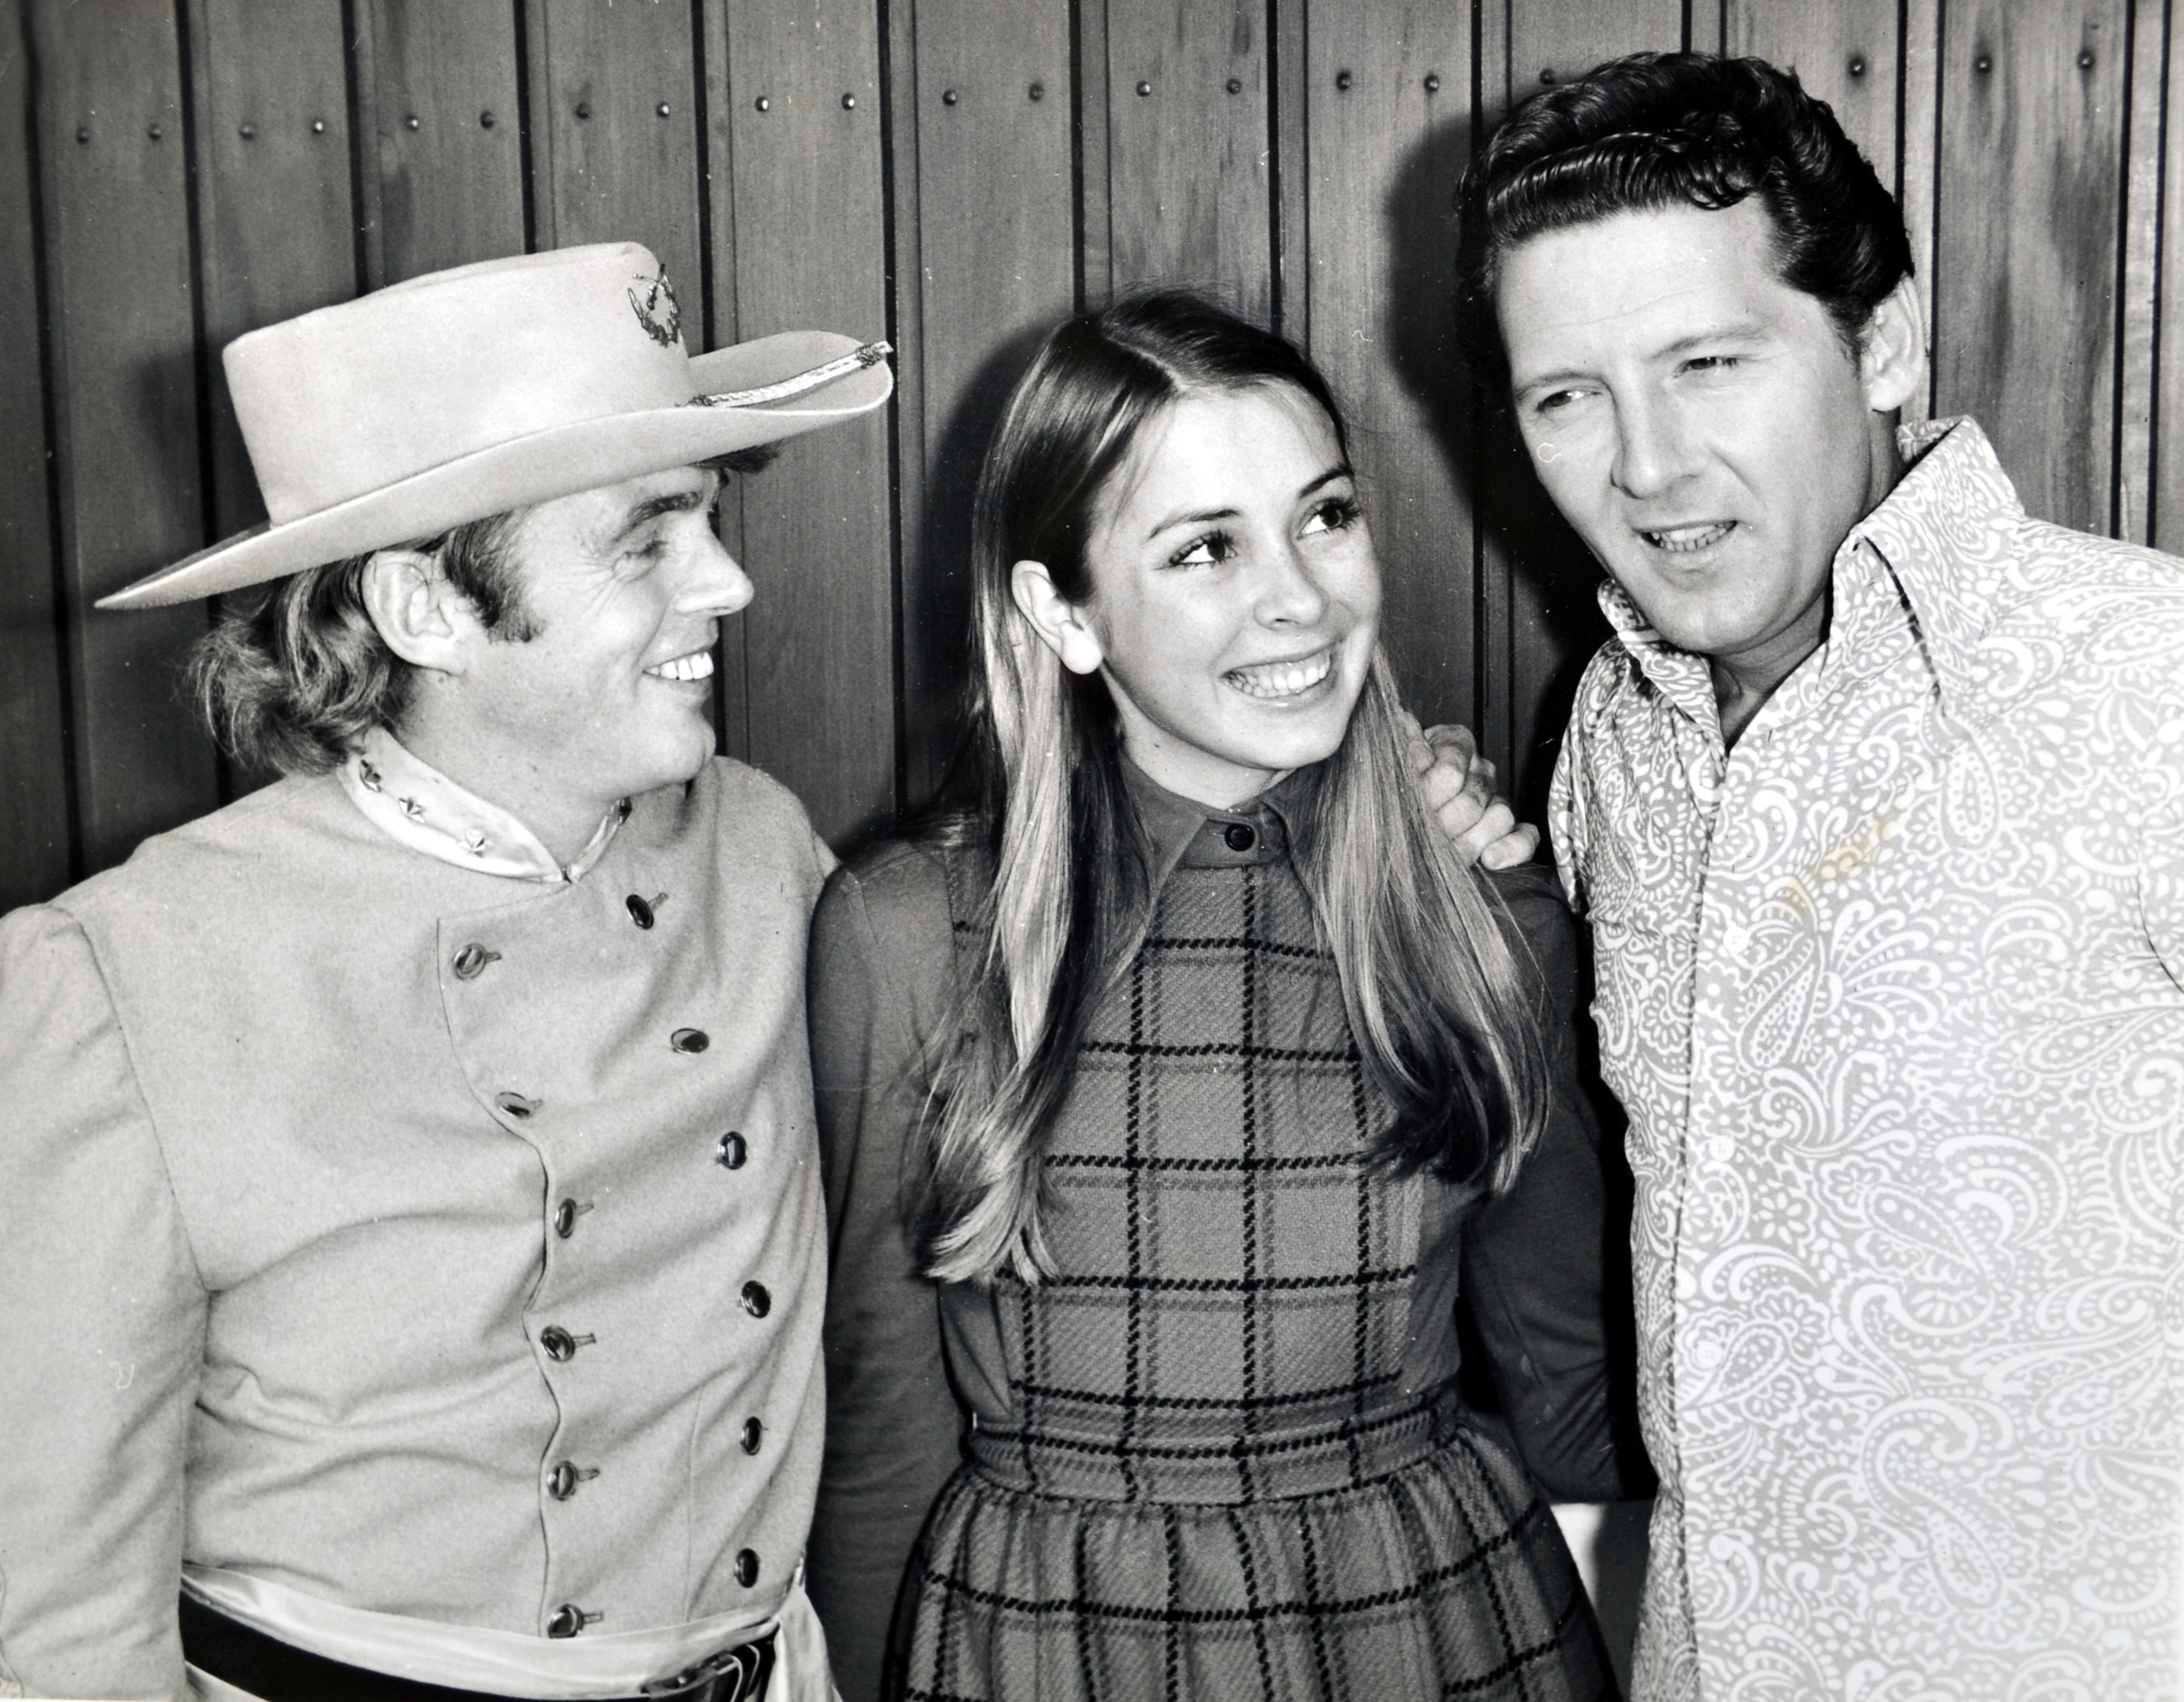 Ward & Irene meet Jerry Lee Lewis in 1971